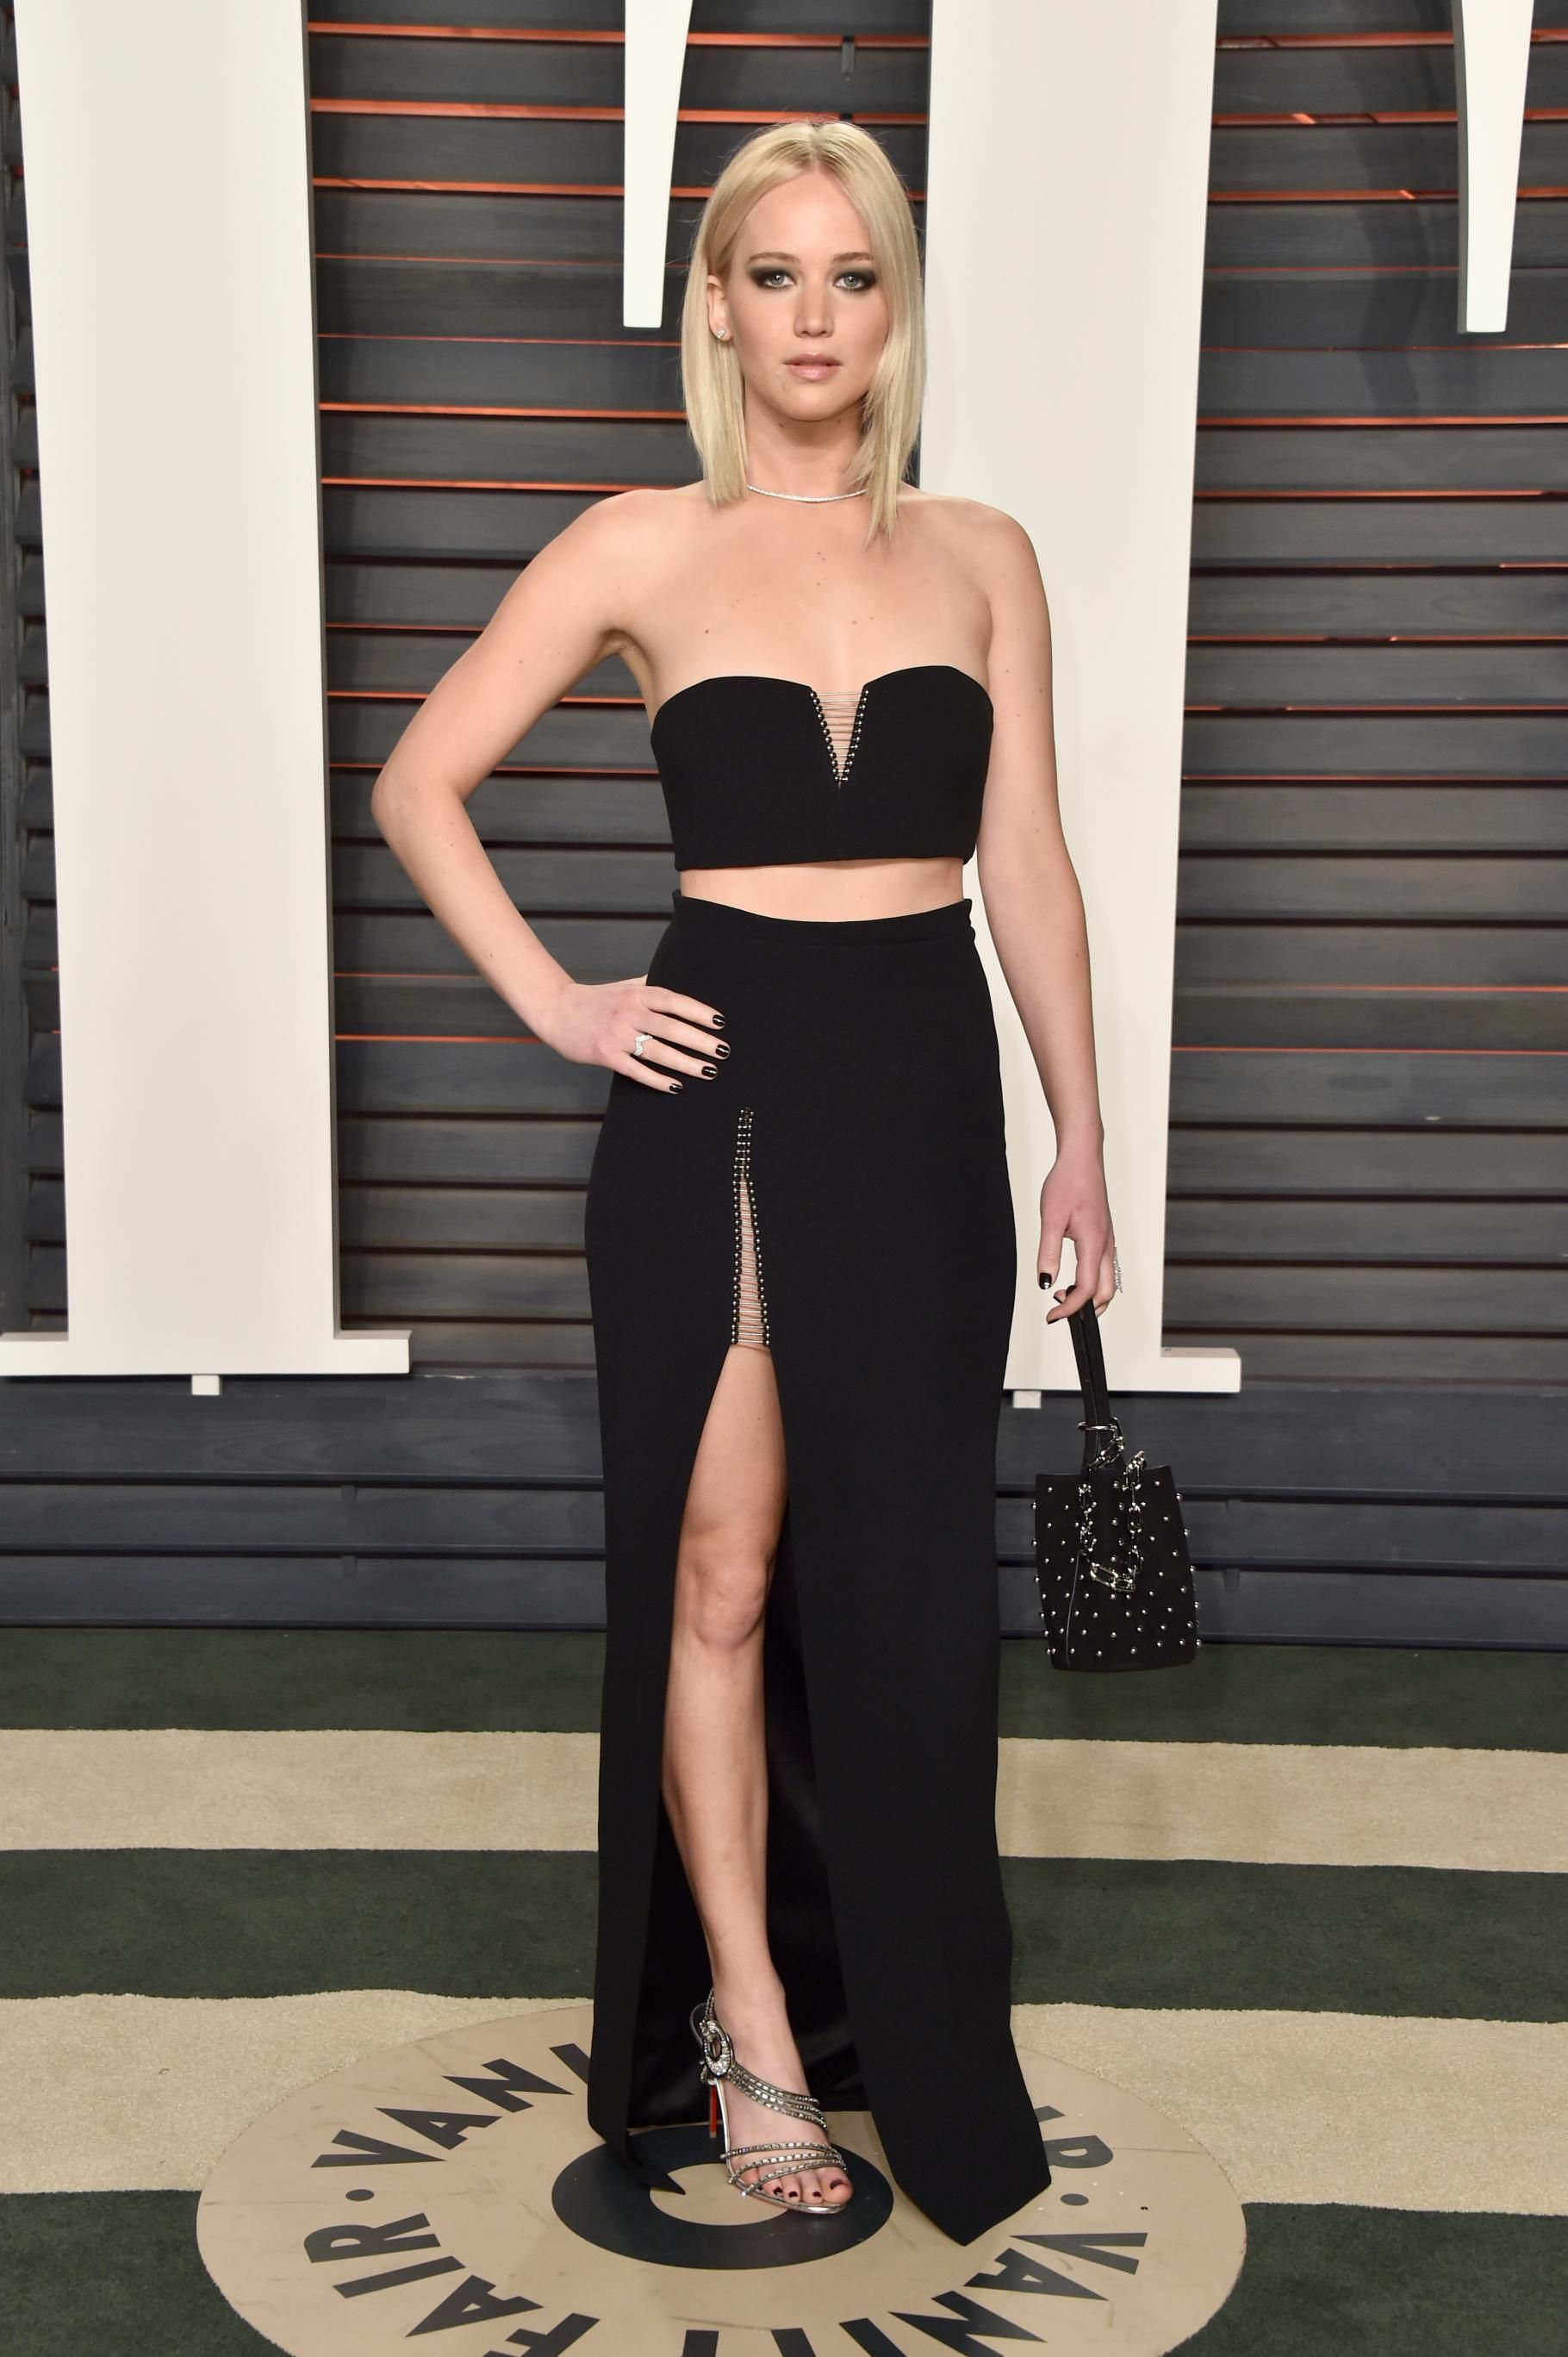 Image result for Jennifer Lawrence 2016 vanity fair party